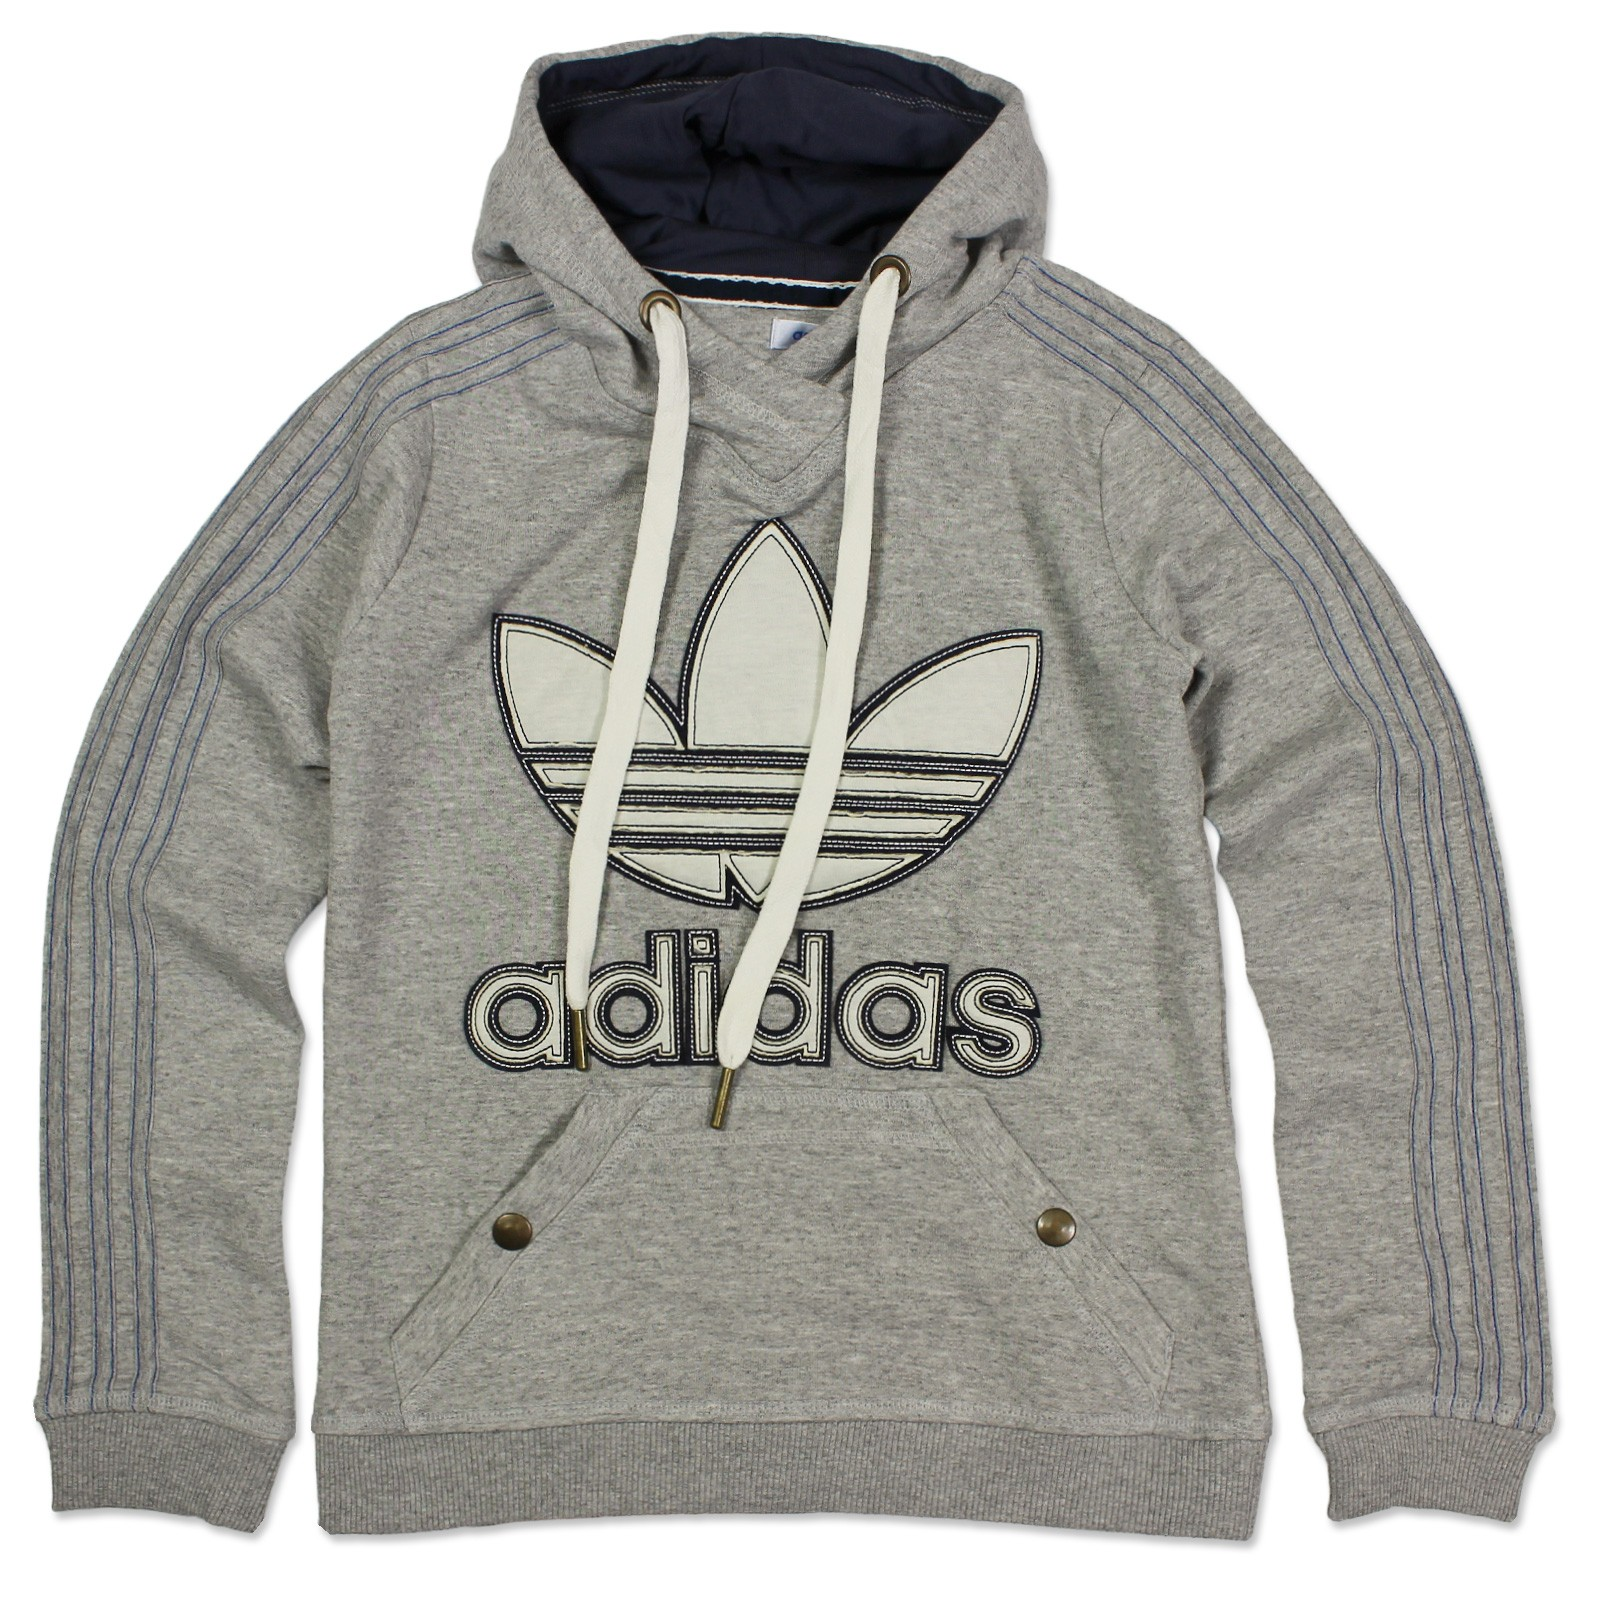 adidas originals adi trefoil ladies hooded sweater jumper sweatshirt hoody grey ebay. Black Bedroom Furniture Sets. Home Design Ideas